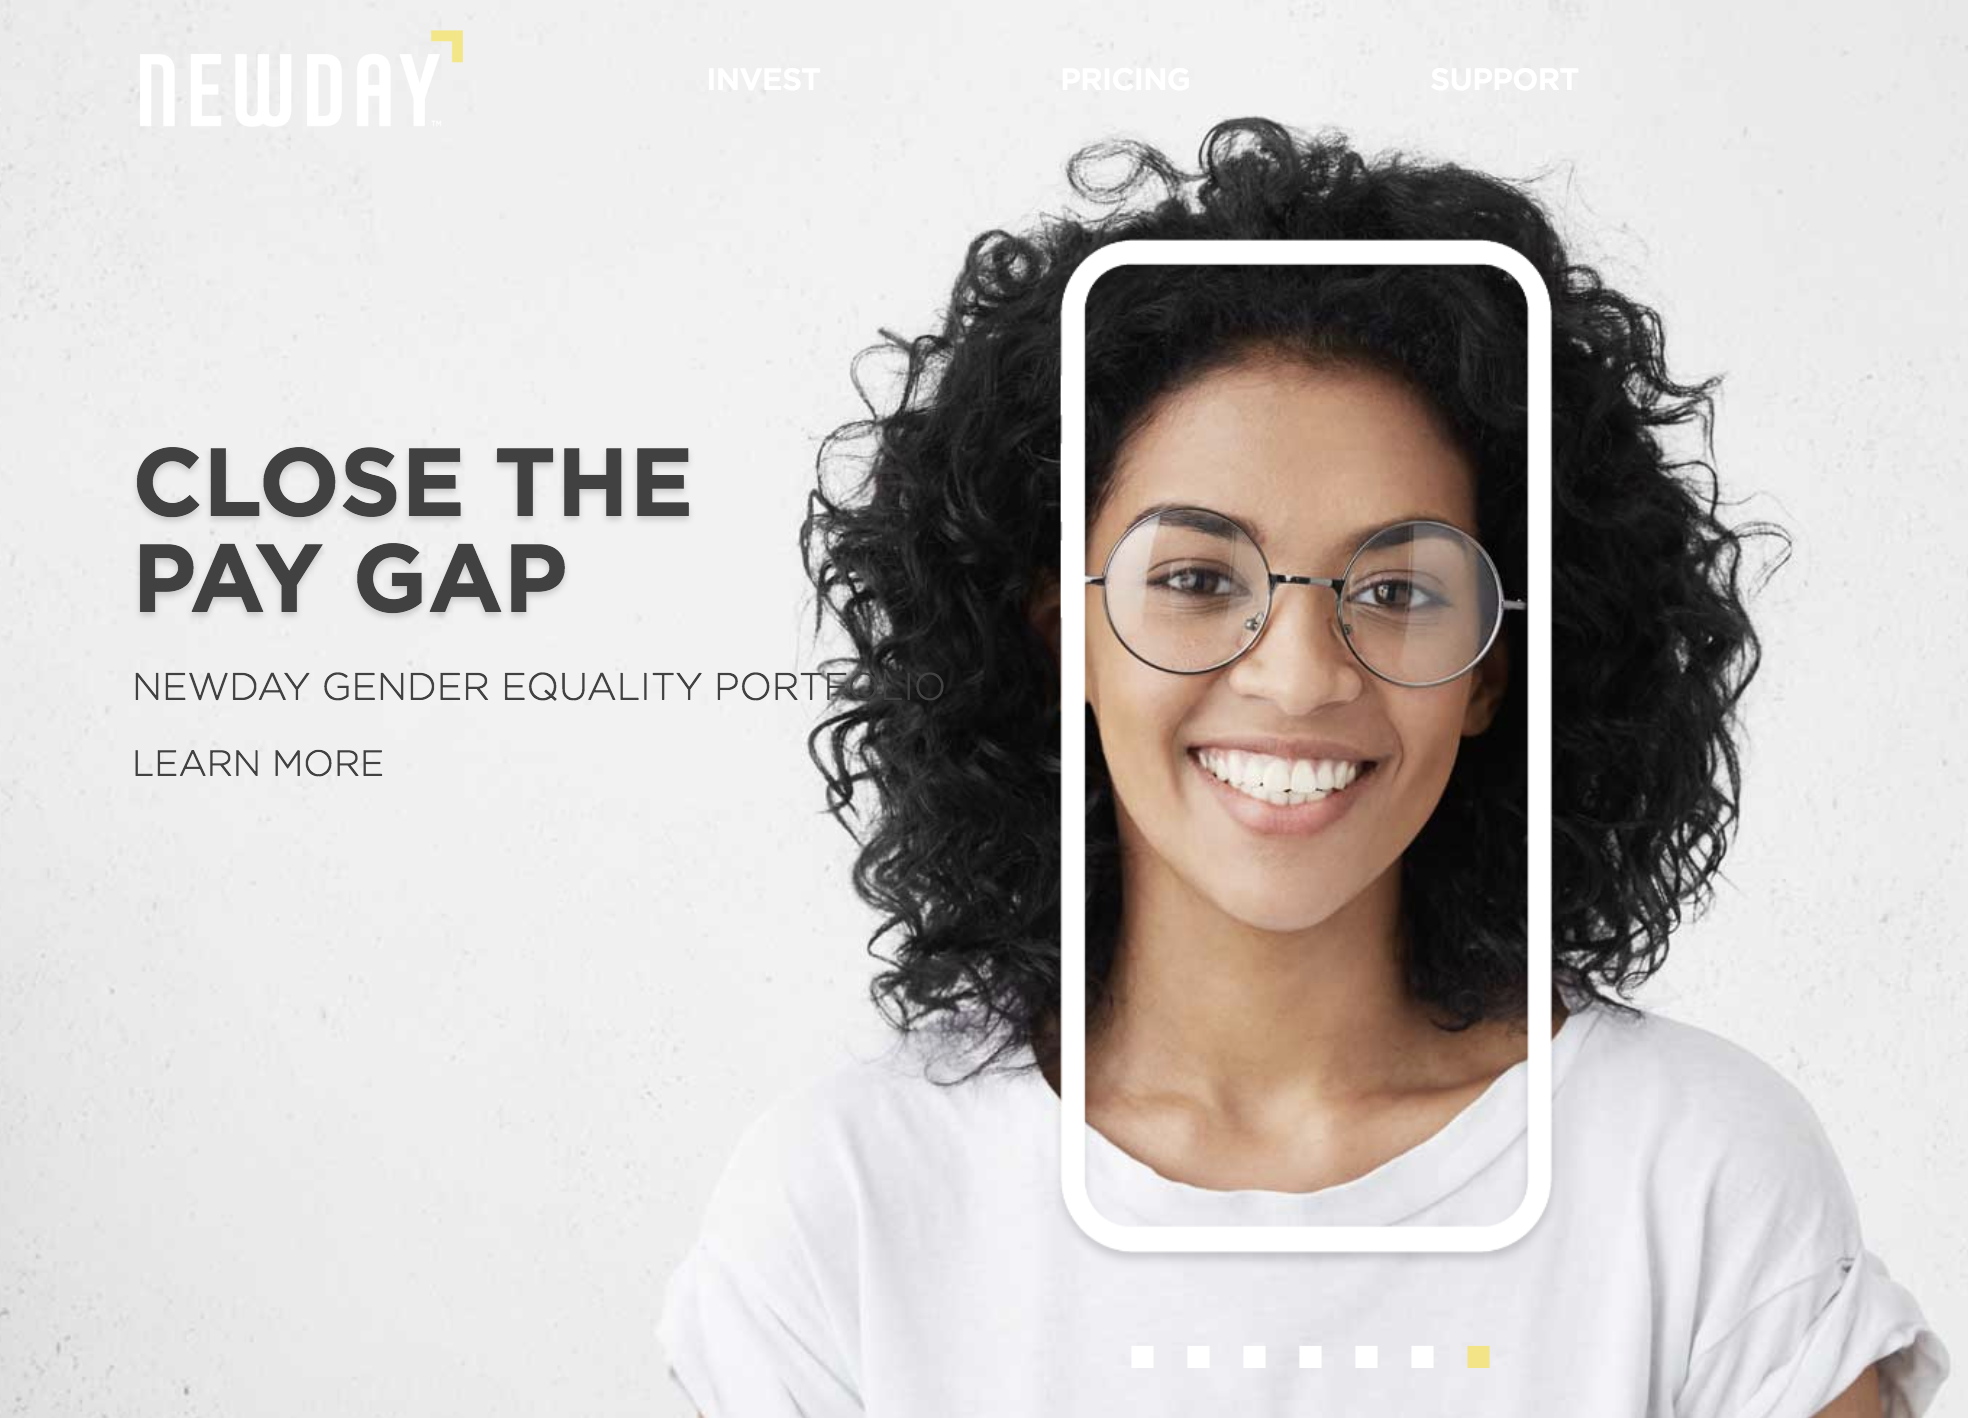 NewDay is an Impact Investing platform that launched this month. Invest in one of six impact portfolios, including Gender Equity.